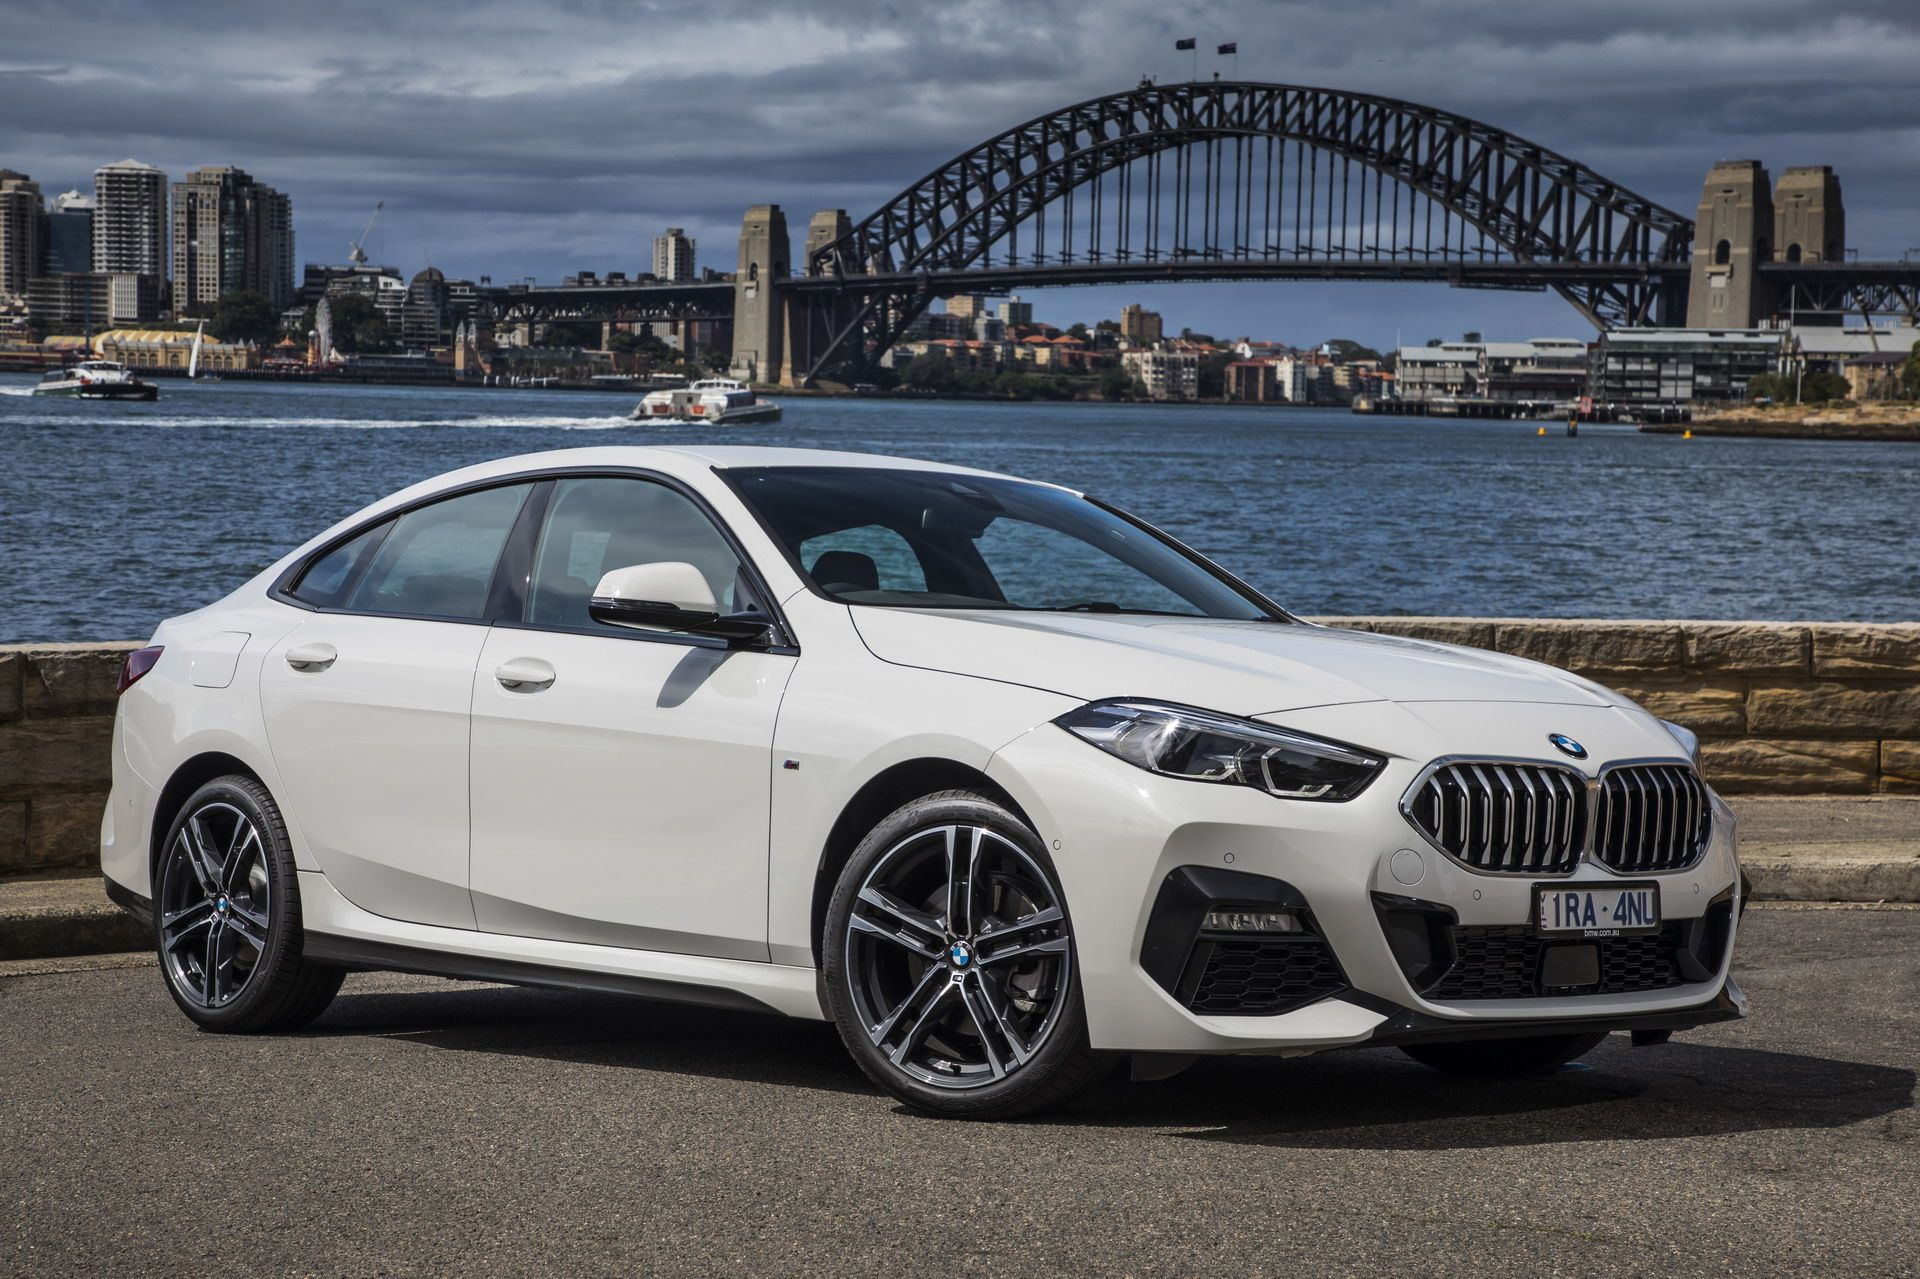 BMW 218i Gran Coupe priced from AUD 47,990 on Australian